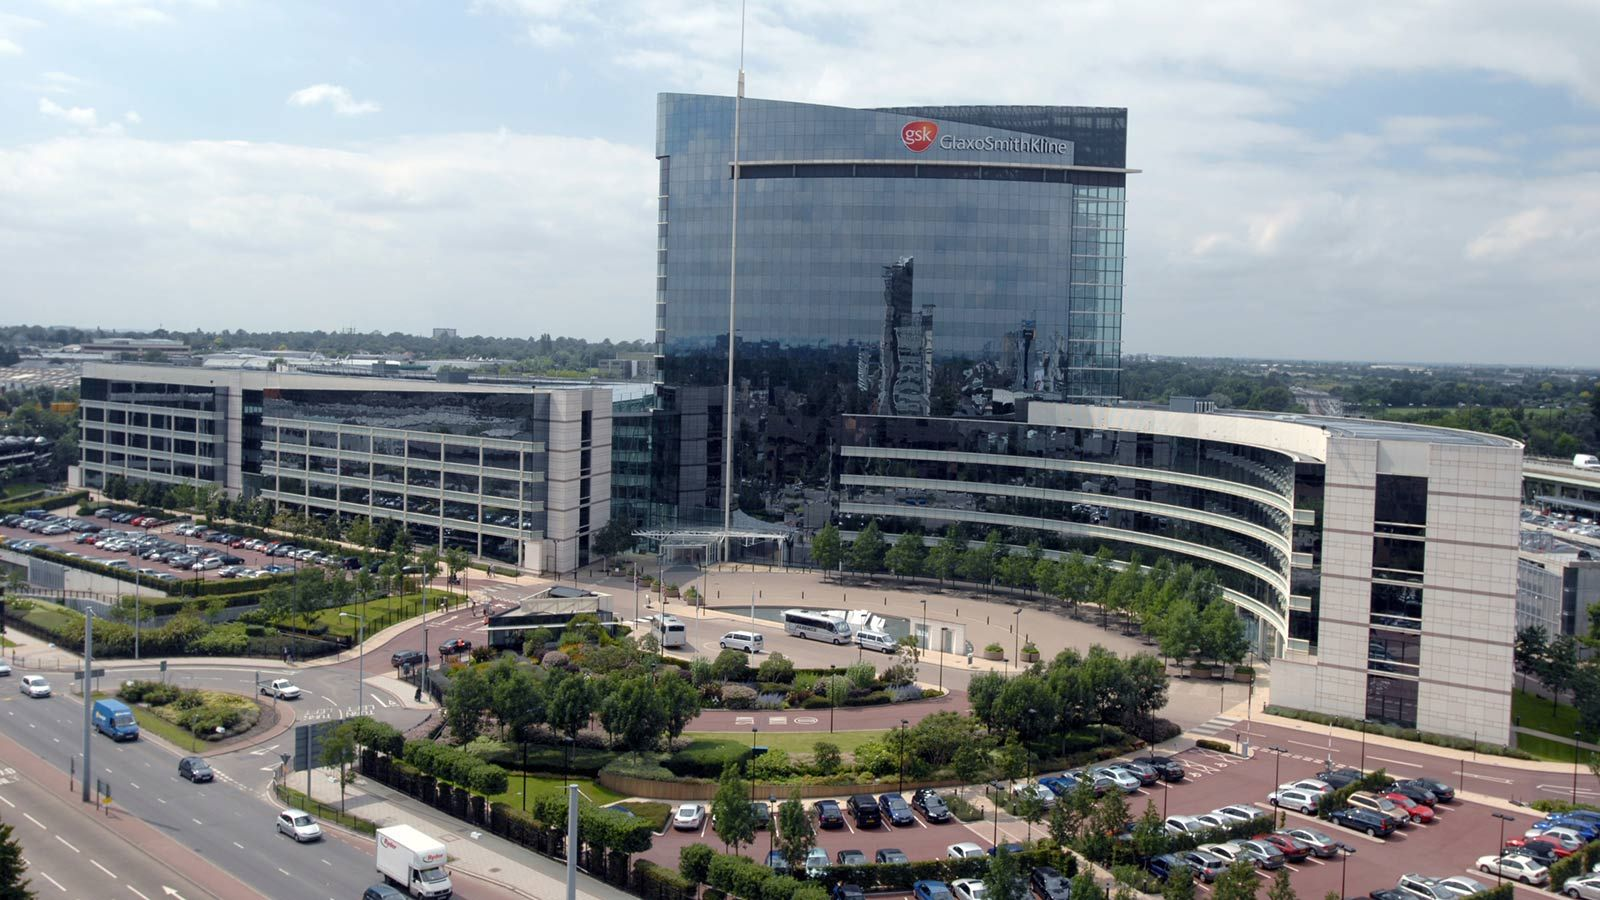 Aerial view of GSK building - Mace Group